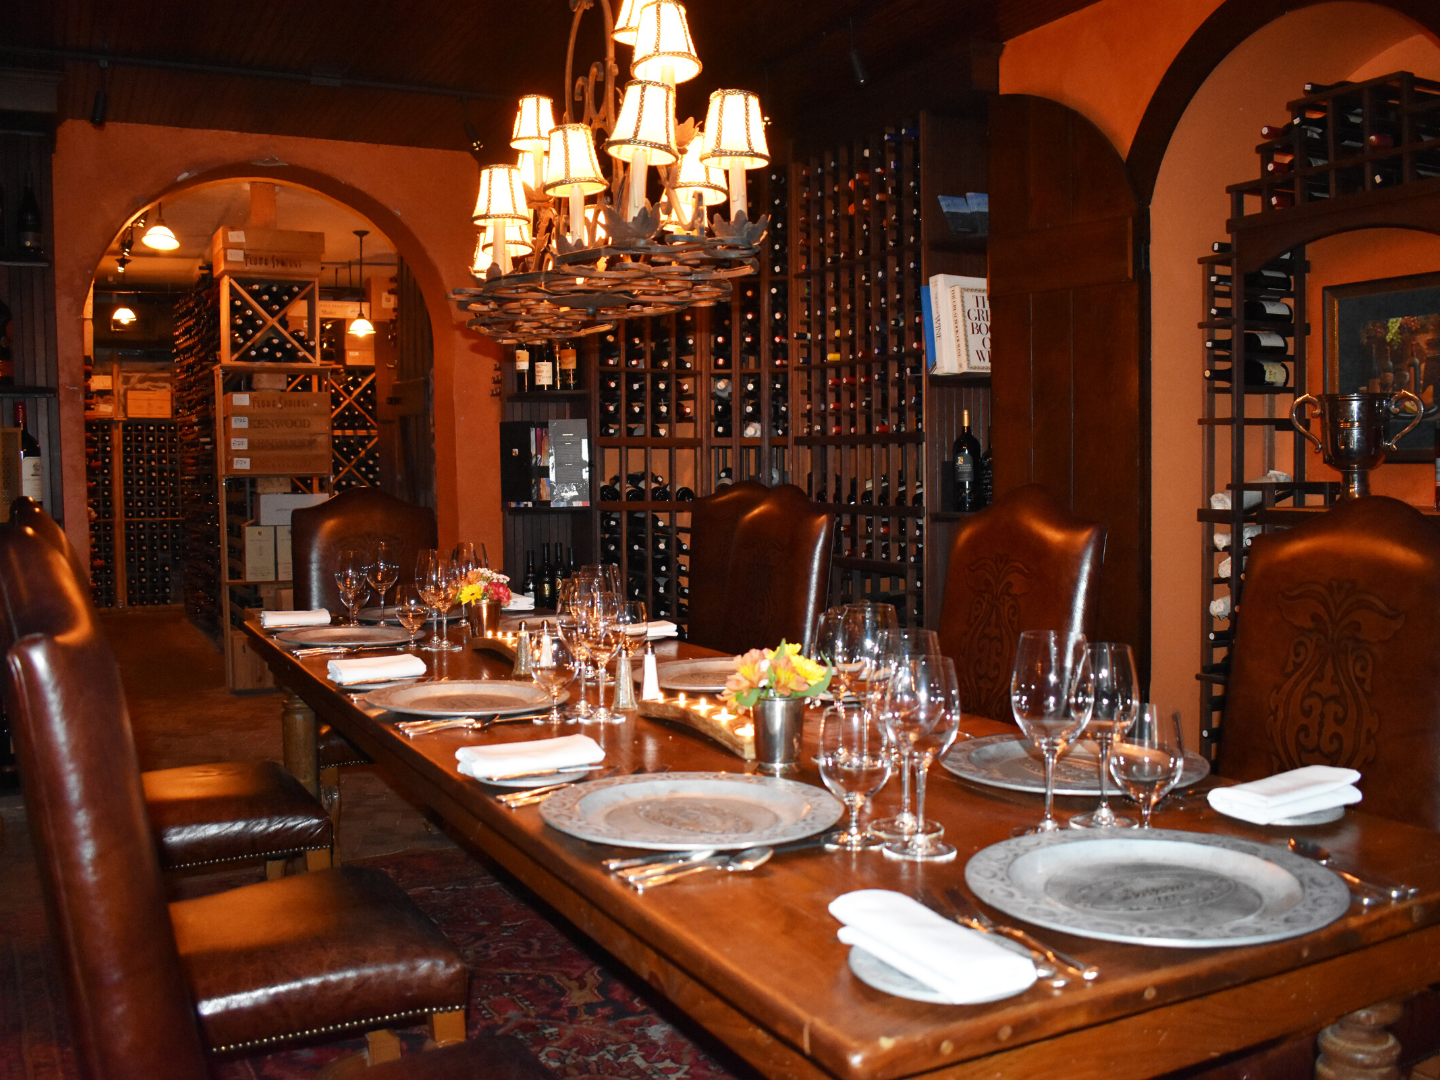 A dining table with wine glasses at Antrim House.